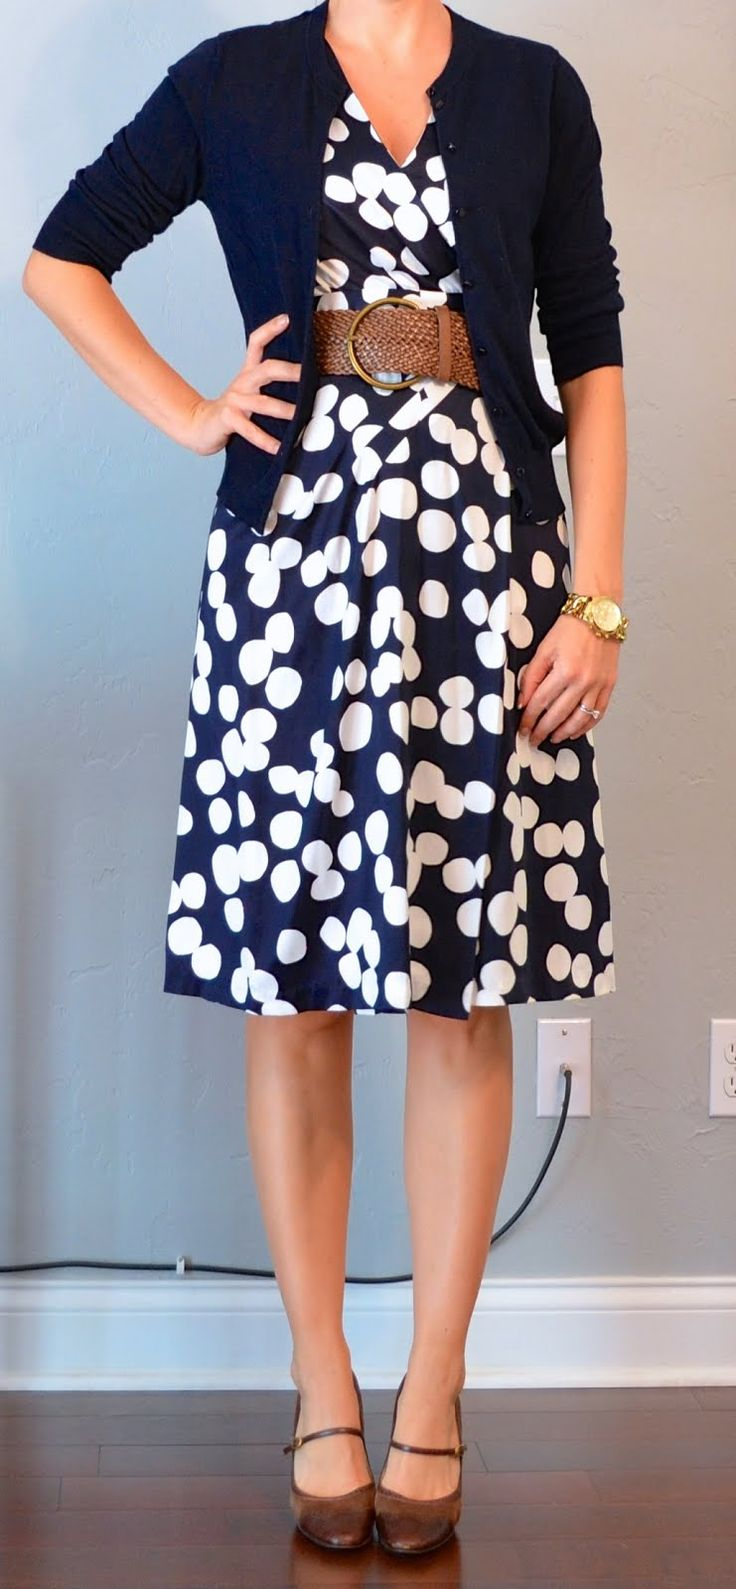 Outfit Posts: outfit post: navy & white polka-dot dress, navy cardigan, wide woven belt-To style my navy and white dress....